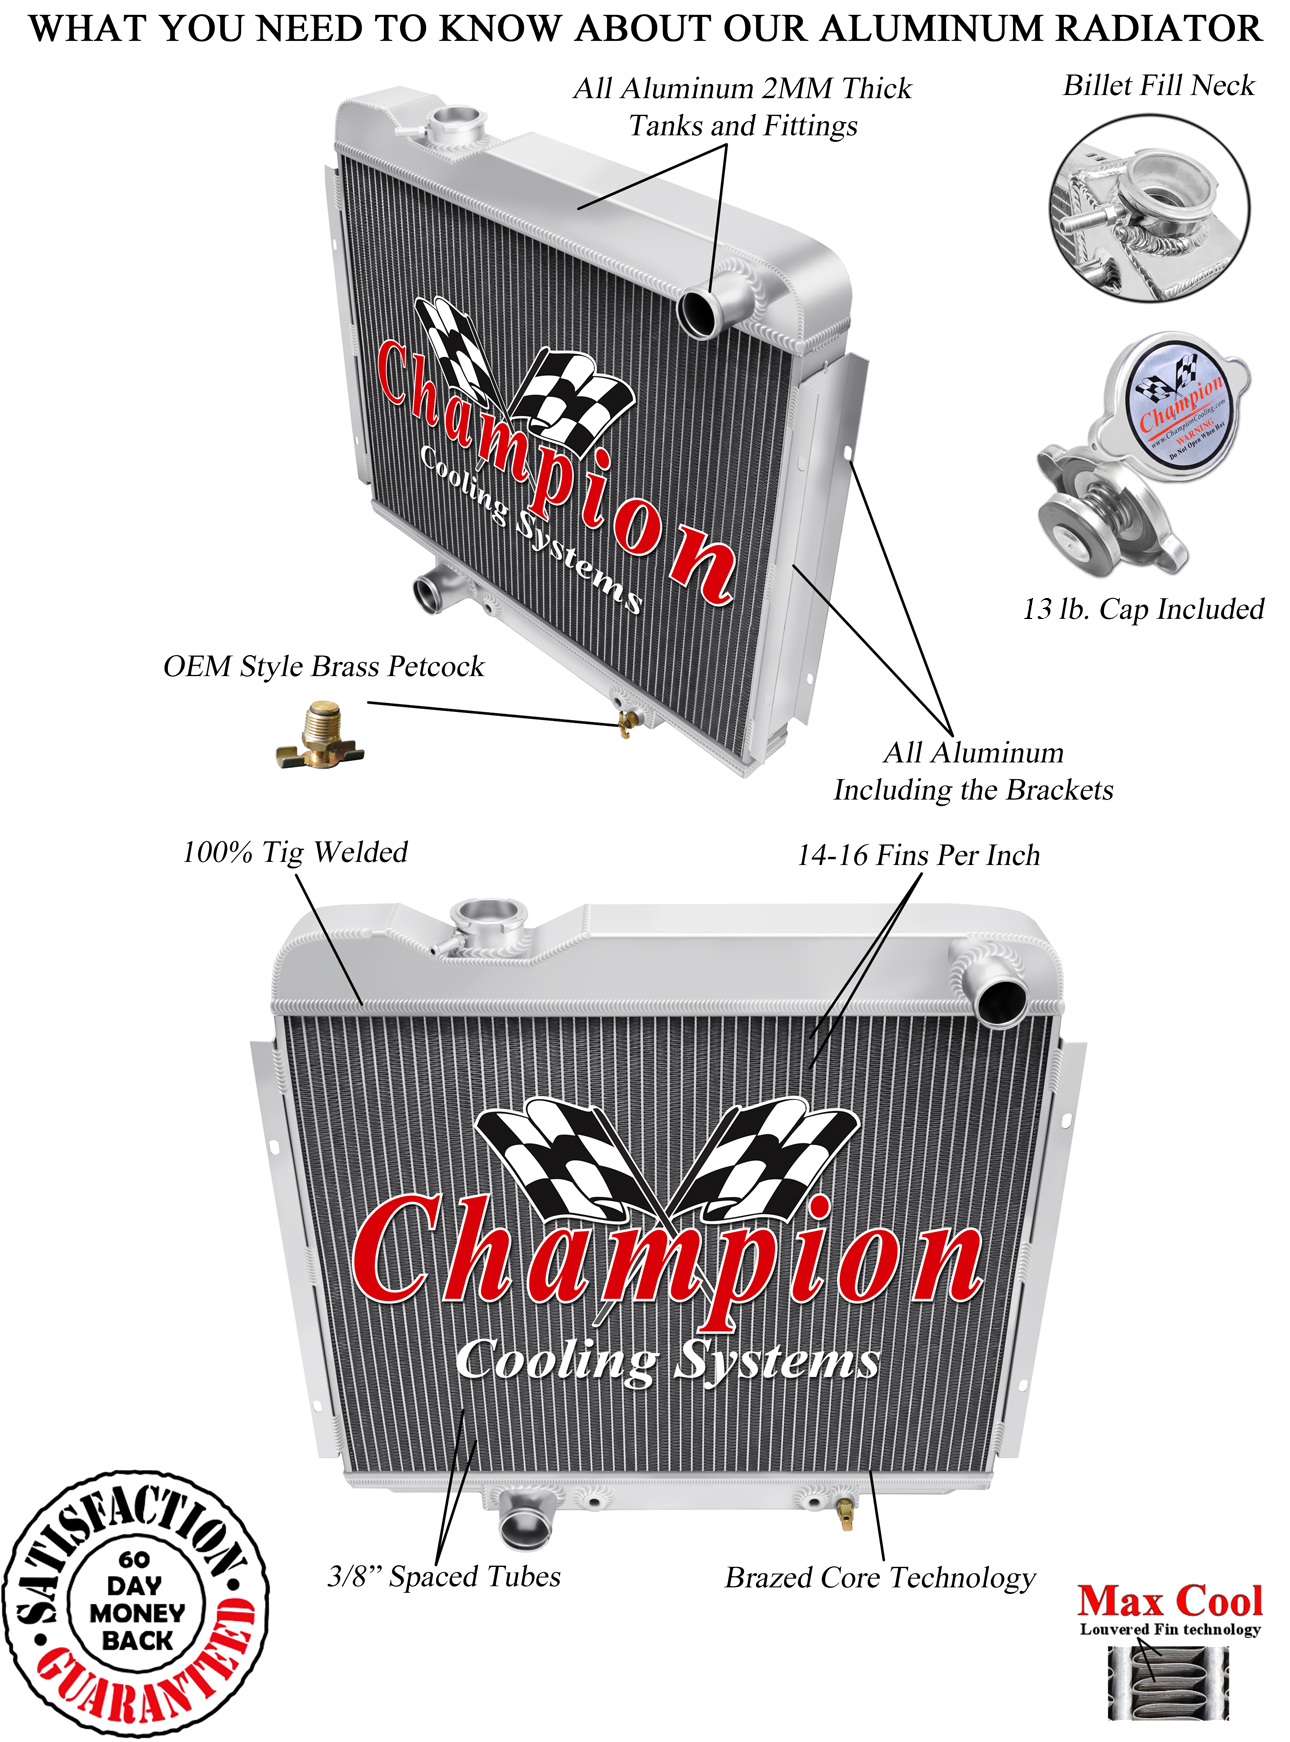 https://www.championcooling.com/photos/Photos%20White/Without%20Fans/65gl/65gl_d_w.jpg